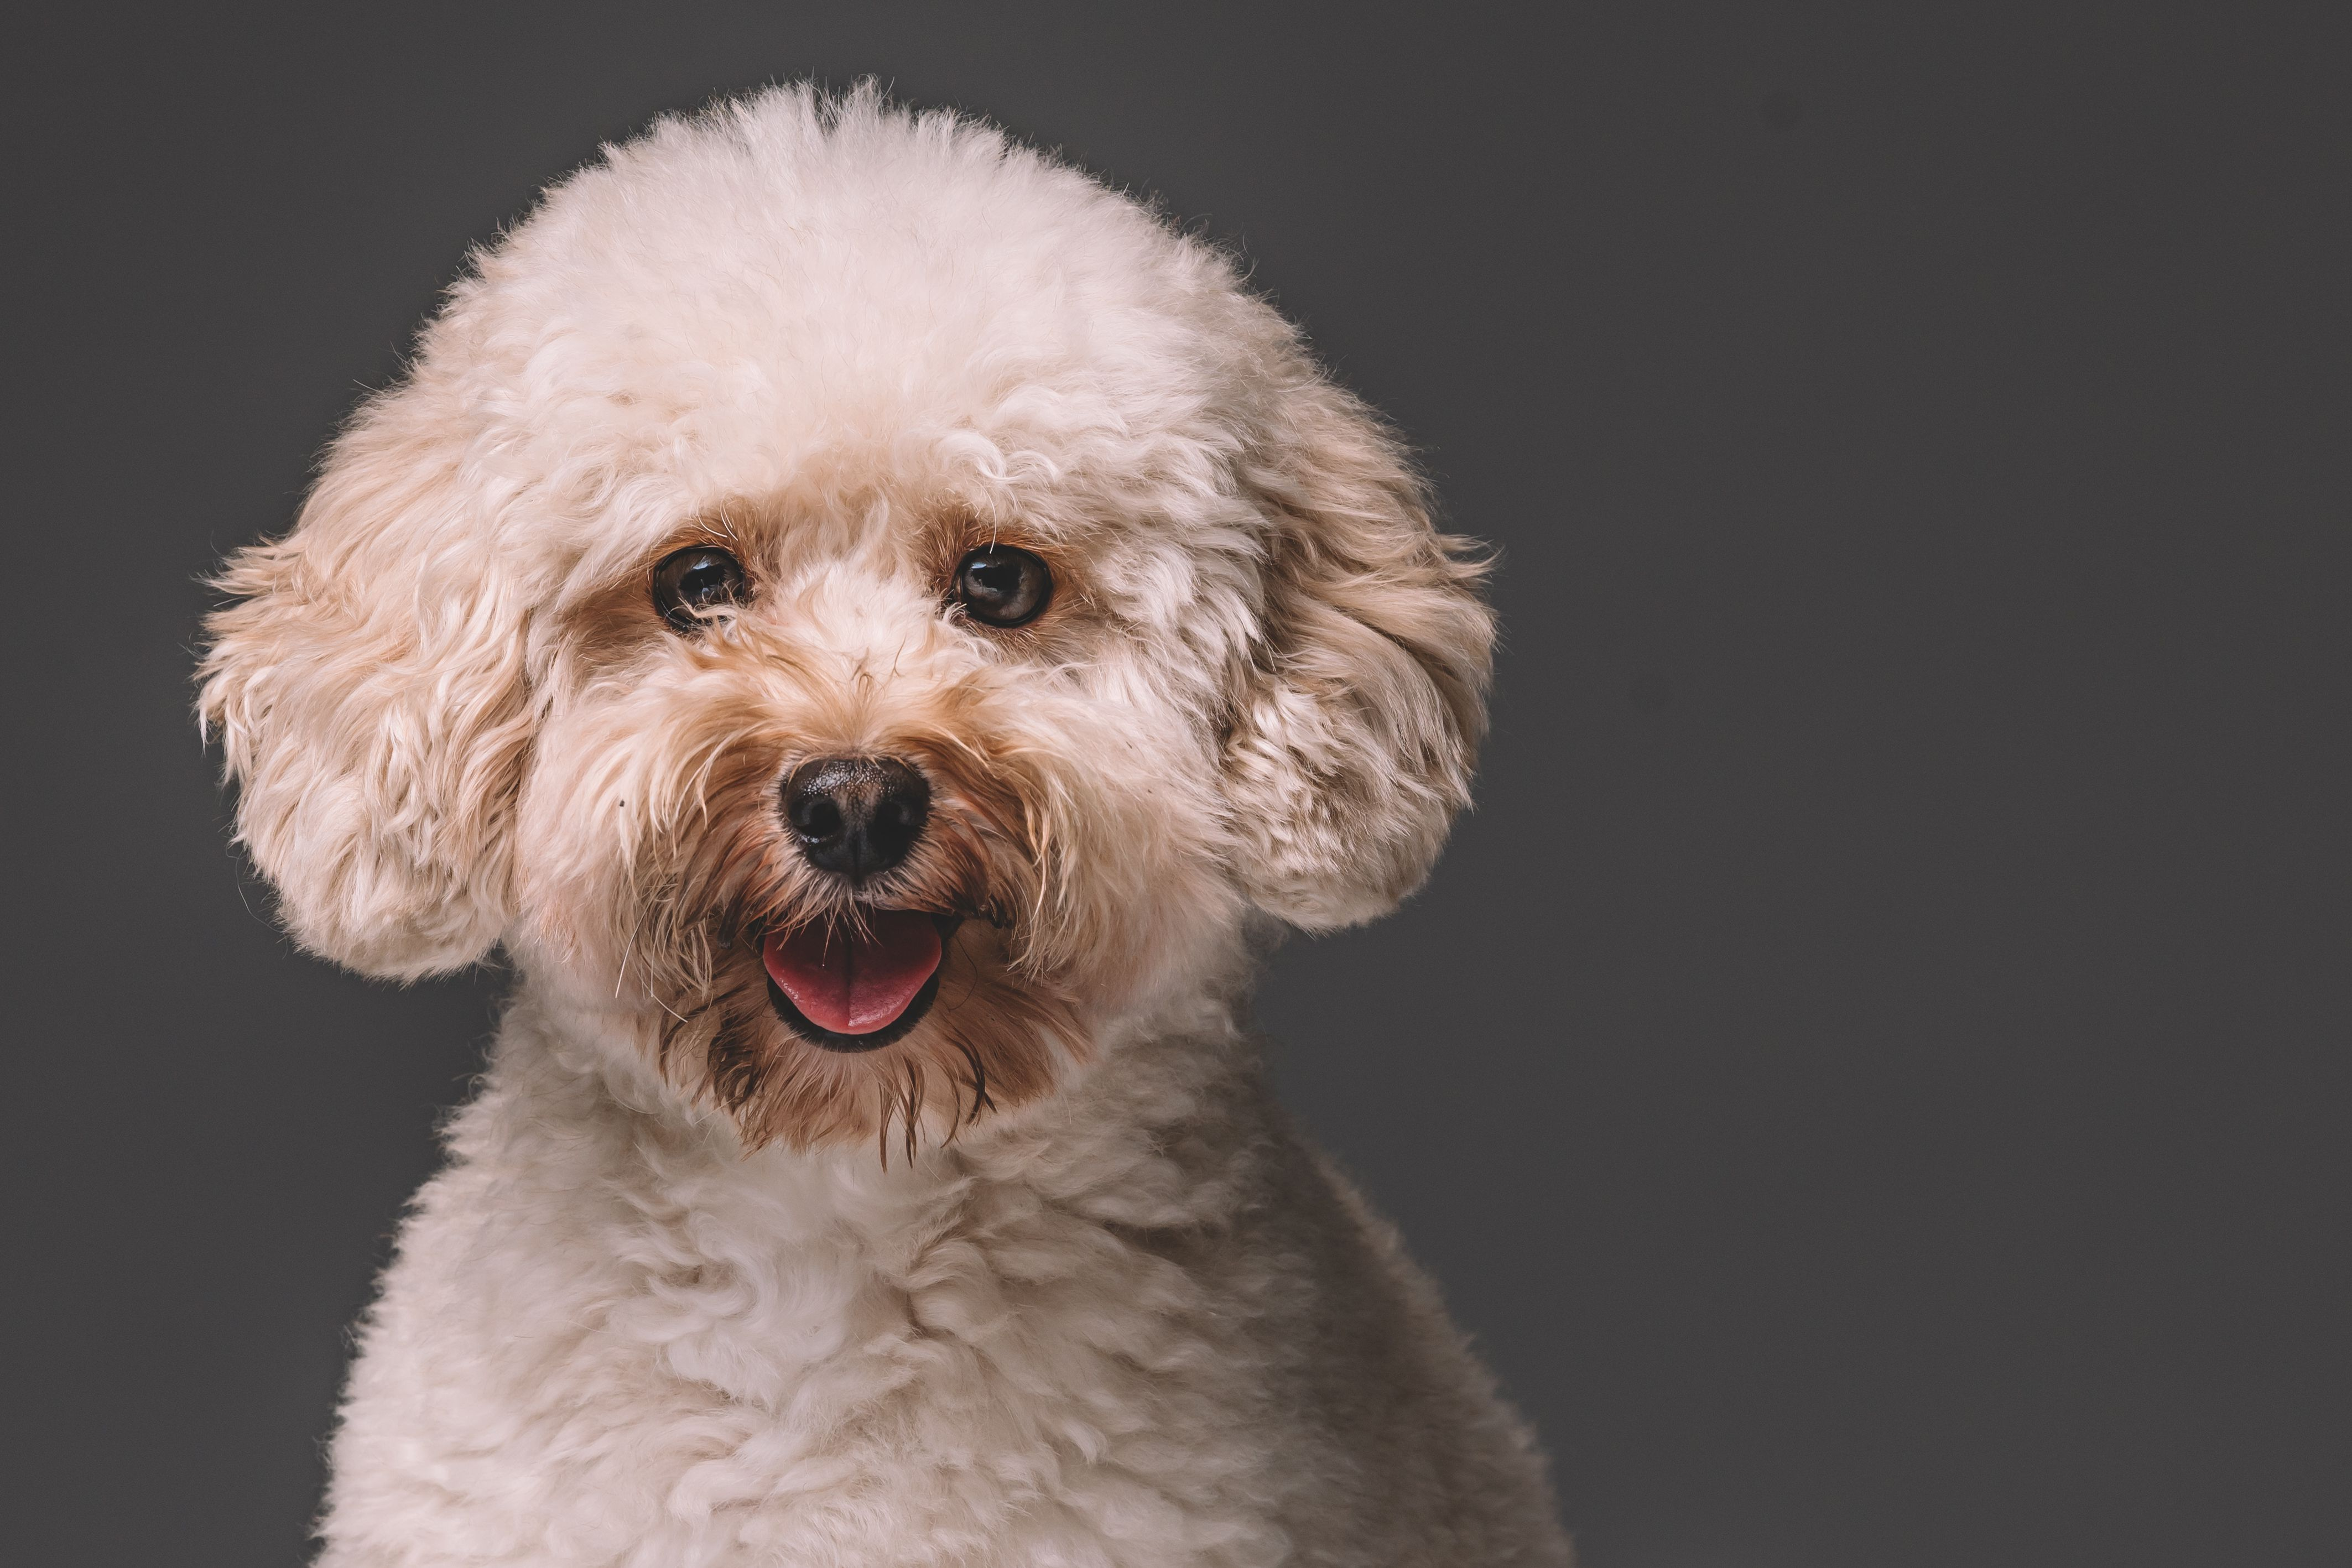 Poodle   Cavapoo puppies, Poodle puppy, Cute dogs and puppies